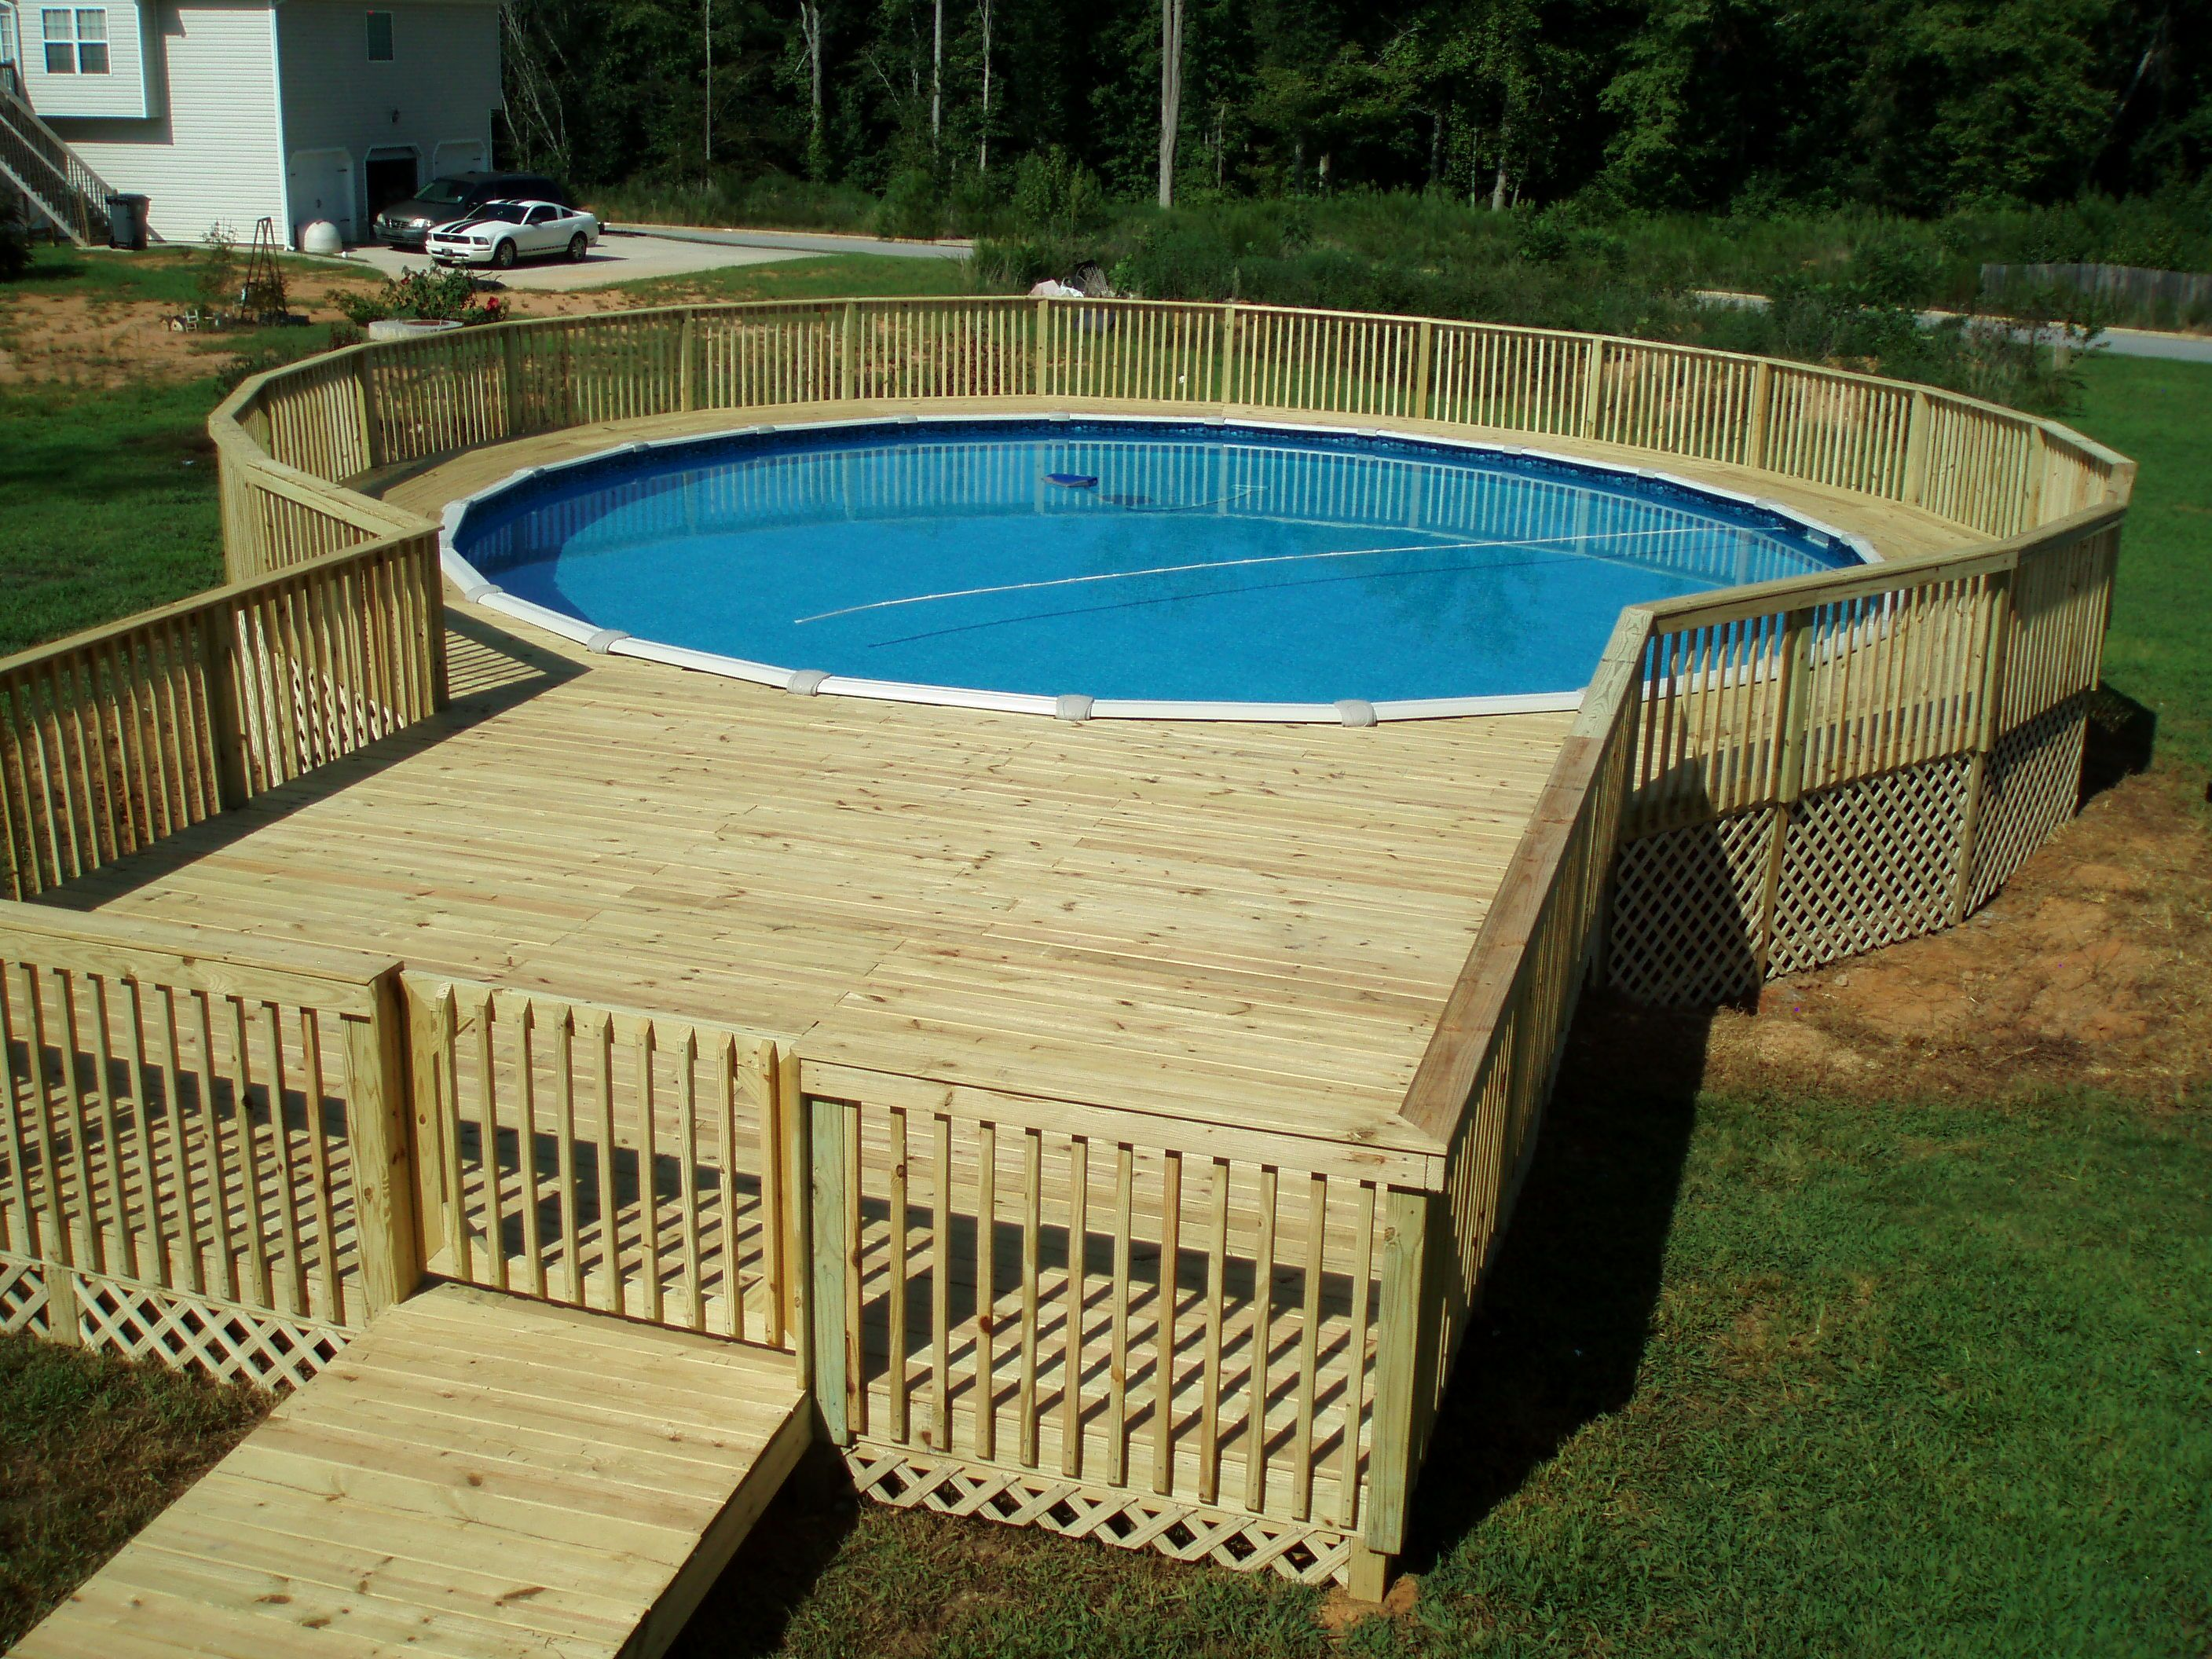 above ground pool decks pool deck ideas for everyoneabove ground pool builder backyard ideas pinterest pool builders ground pools and decking